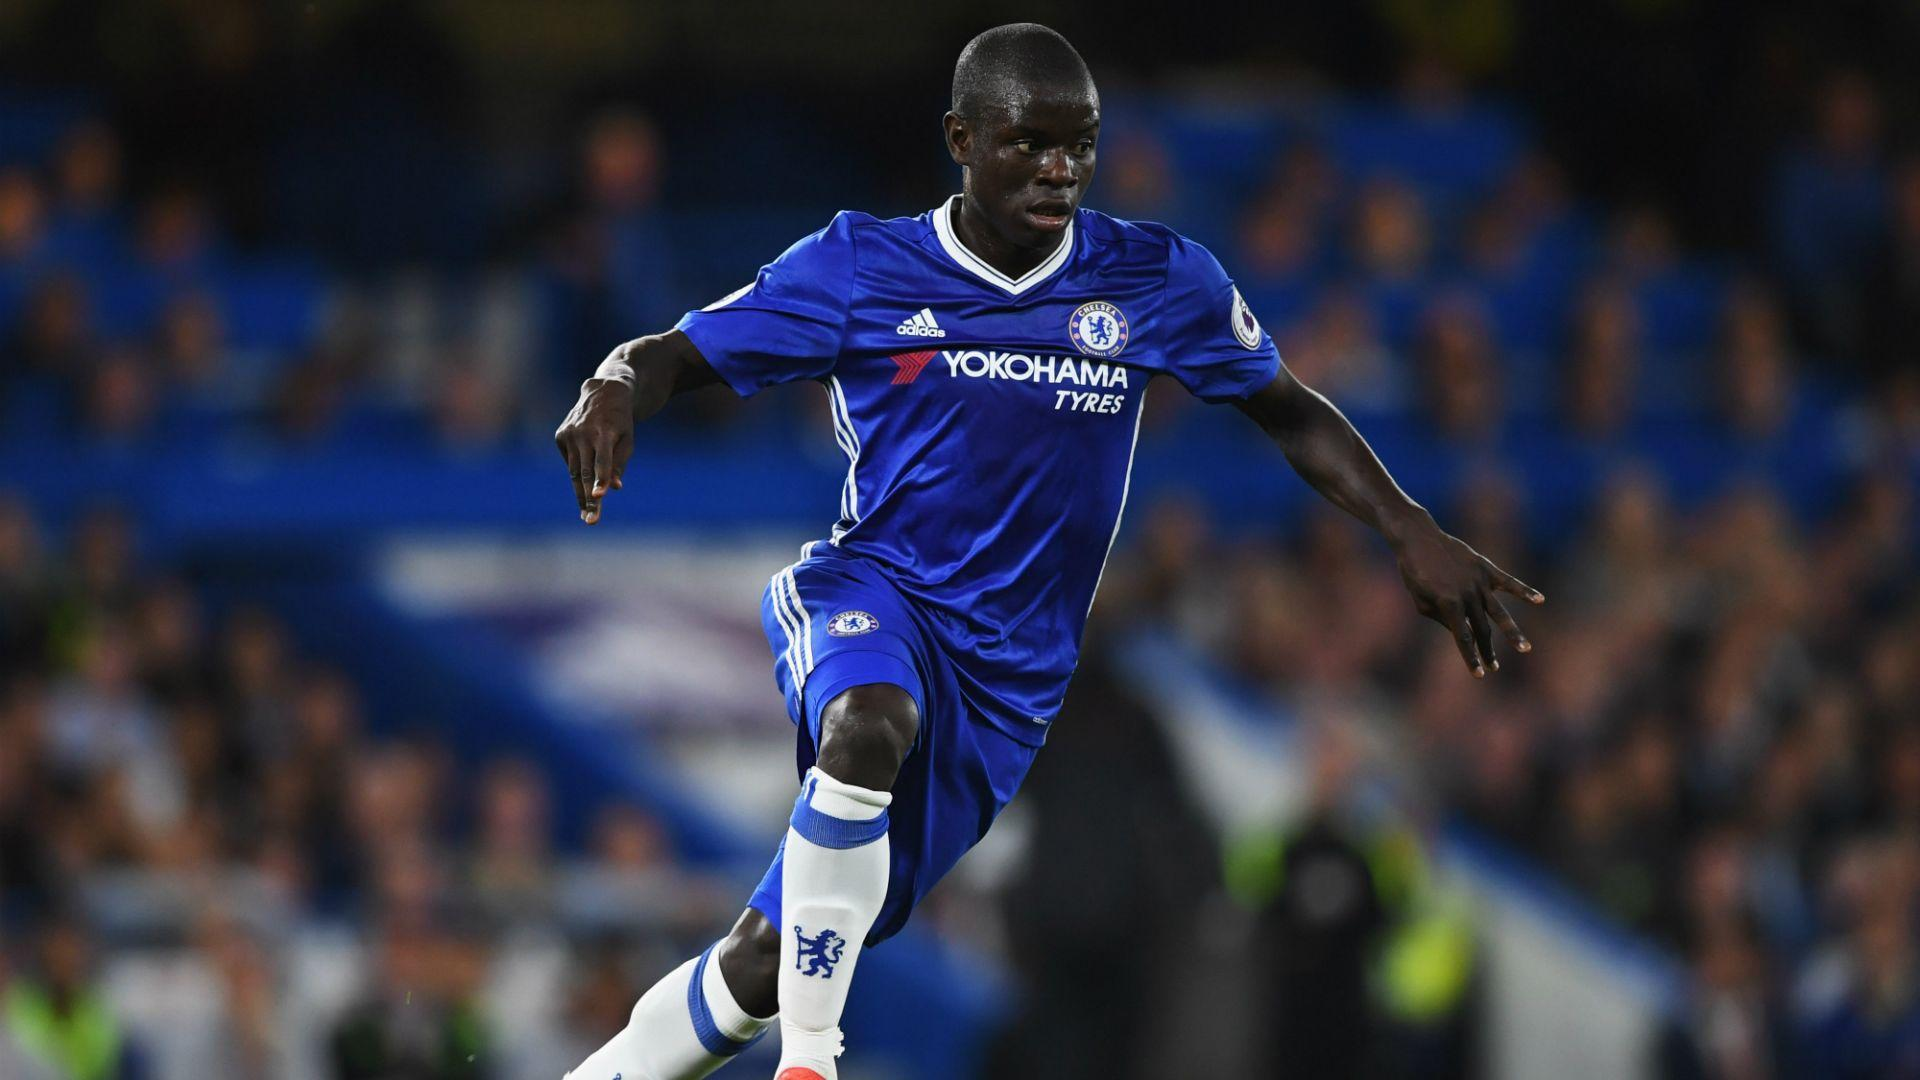 His history is amazing' - David Luiz hails Kante as one of world's .